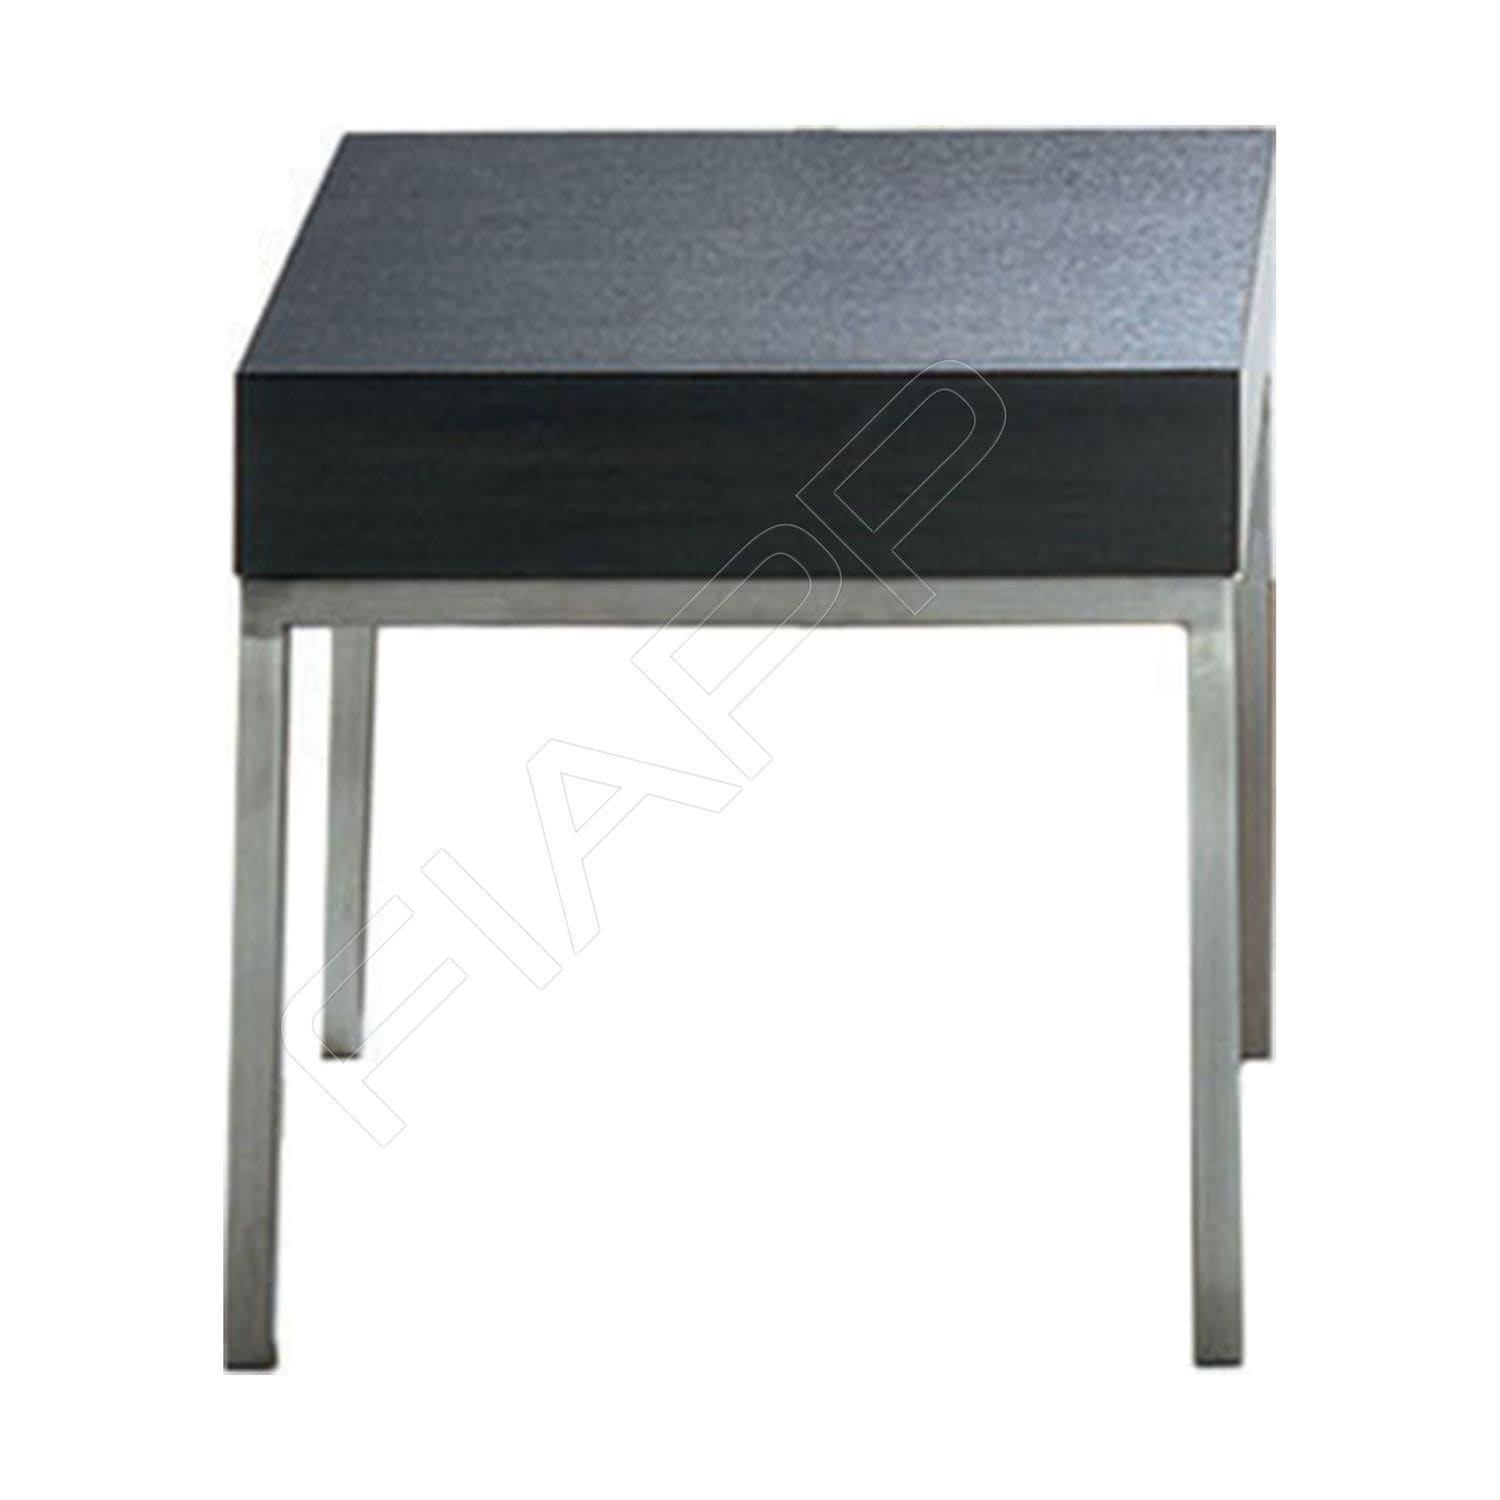 coffee table stainless steel square commercial harmony t01 - Stainless Steel Table Top